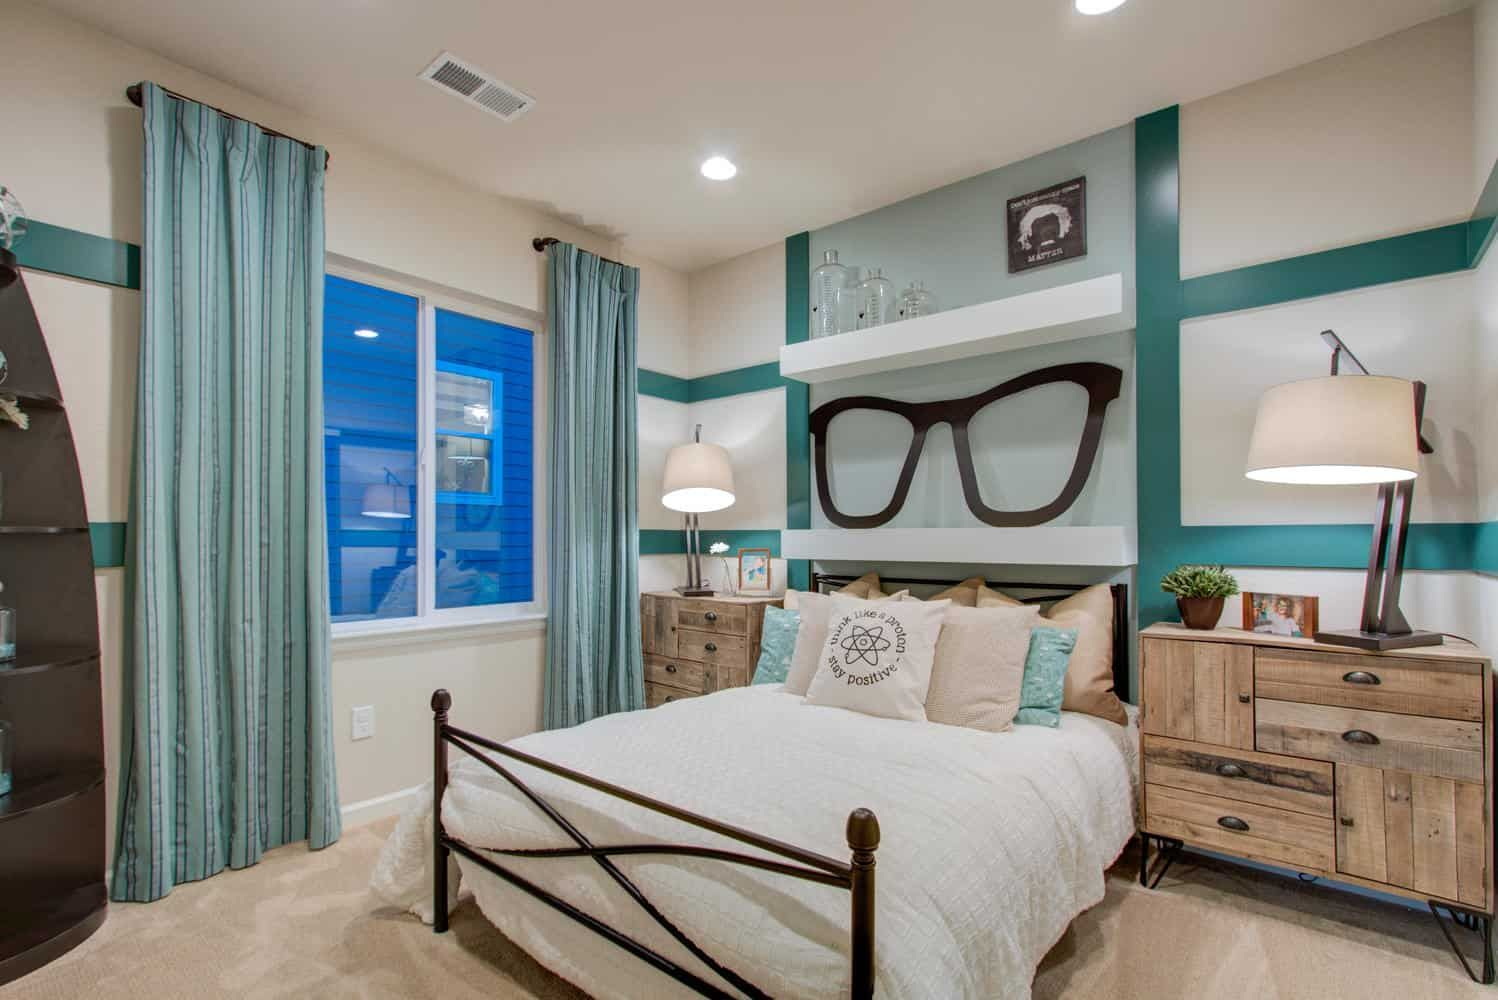 Bedroom featured in the Plan 3501 By Tri Pointe Homes in Denver, CO